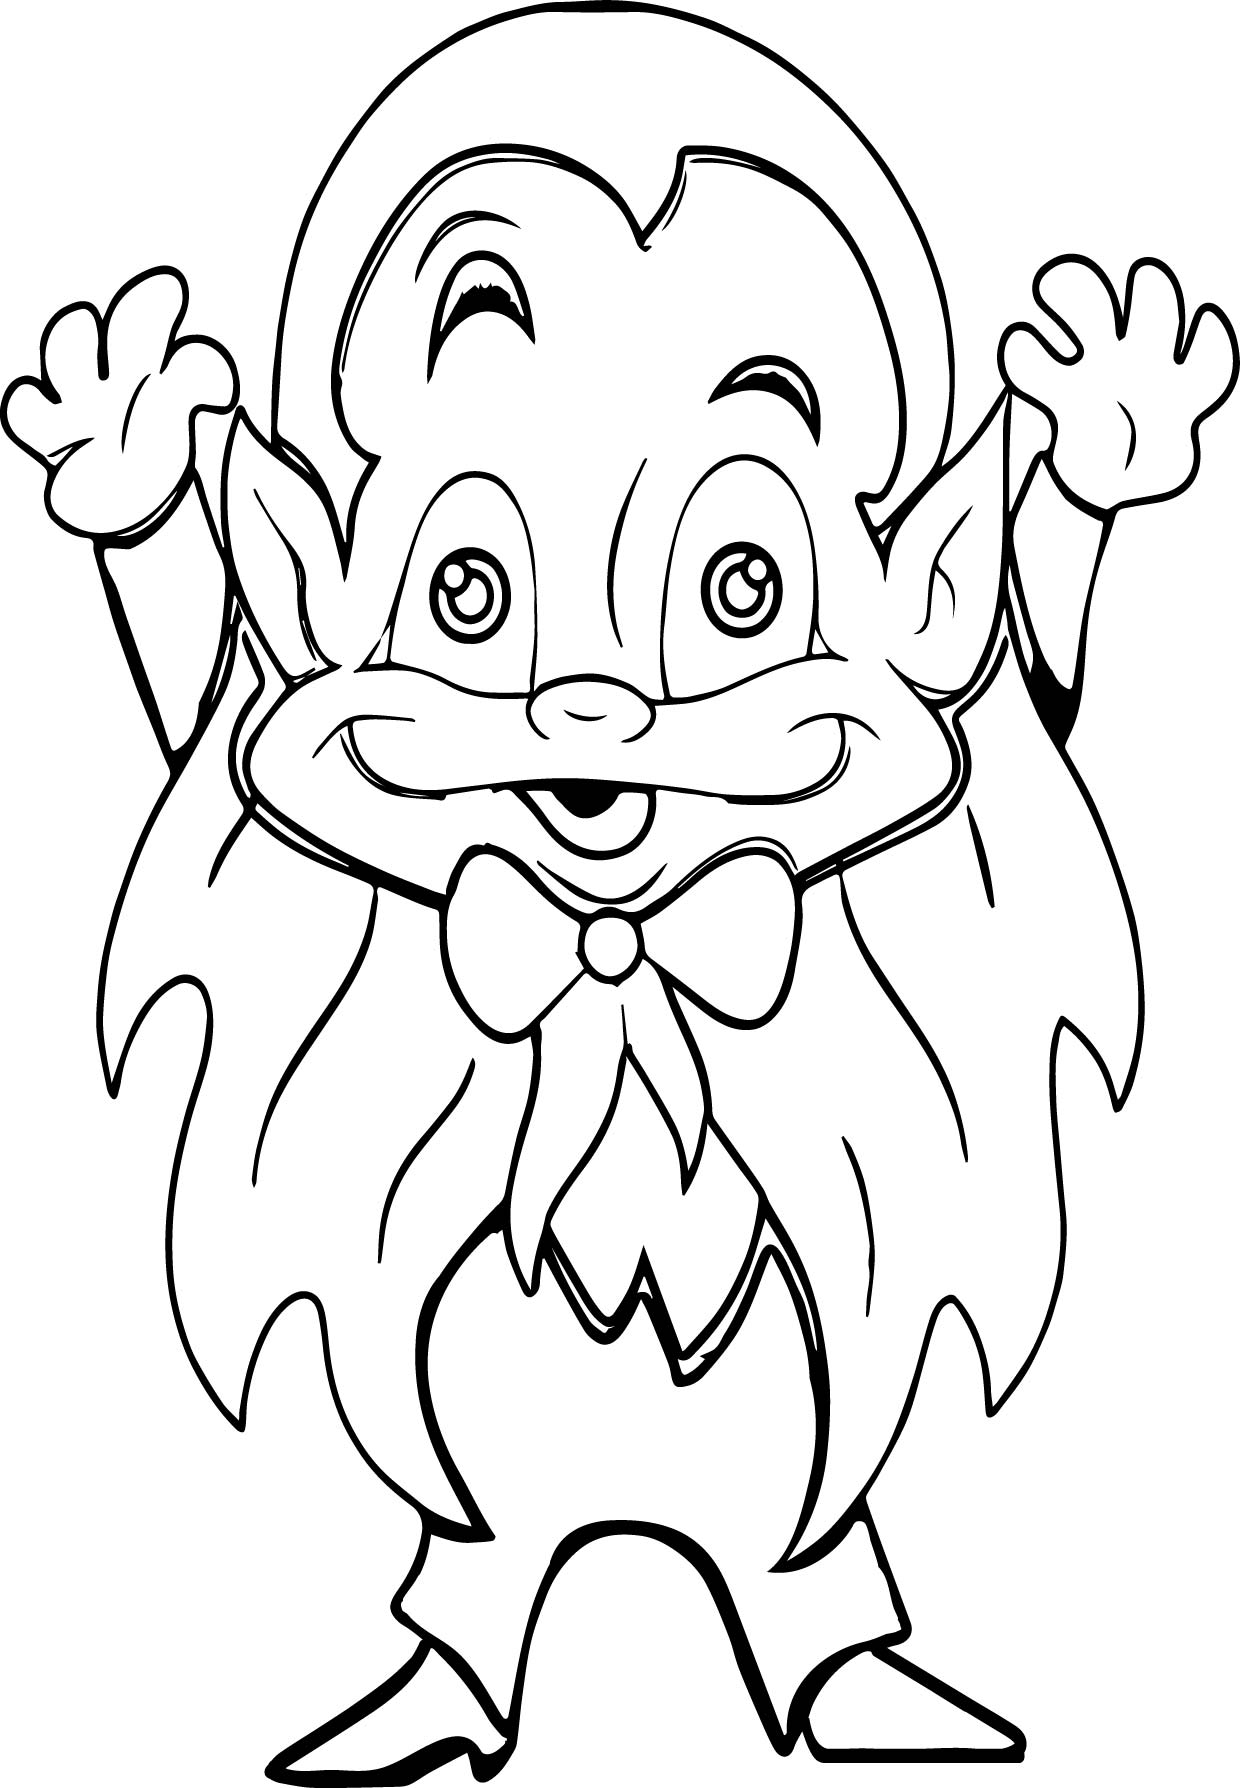 Boo Vampire Coloring Page